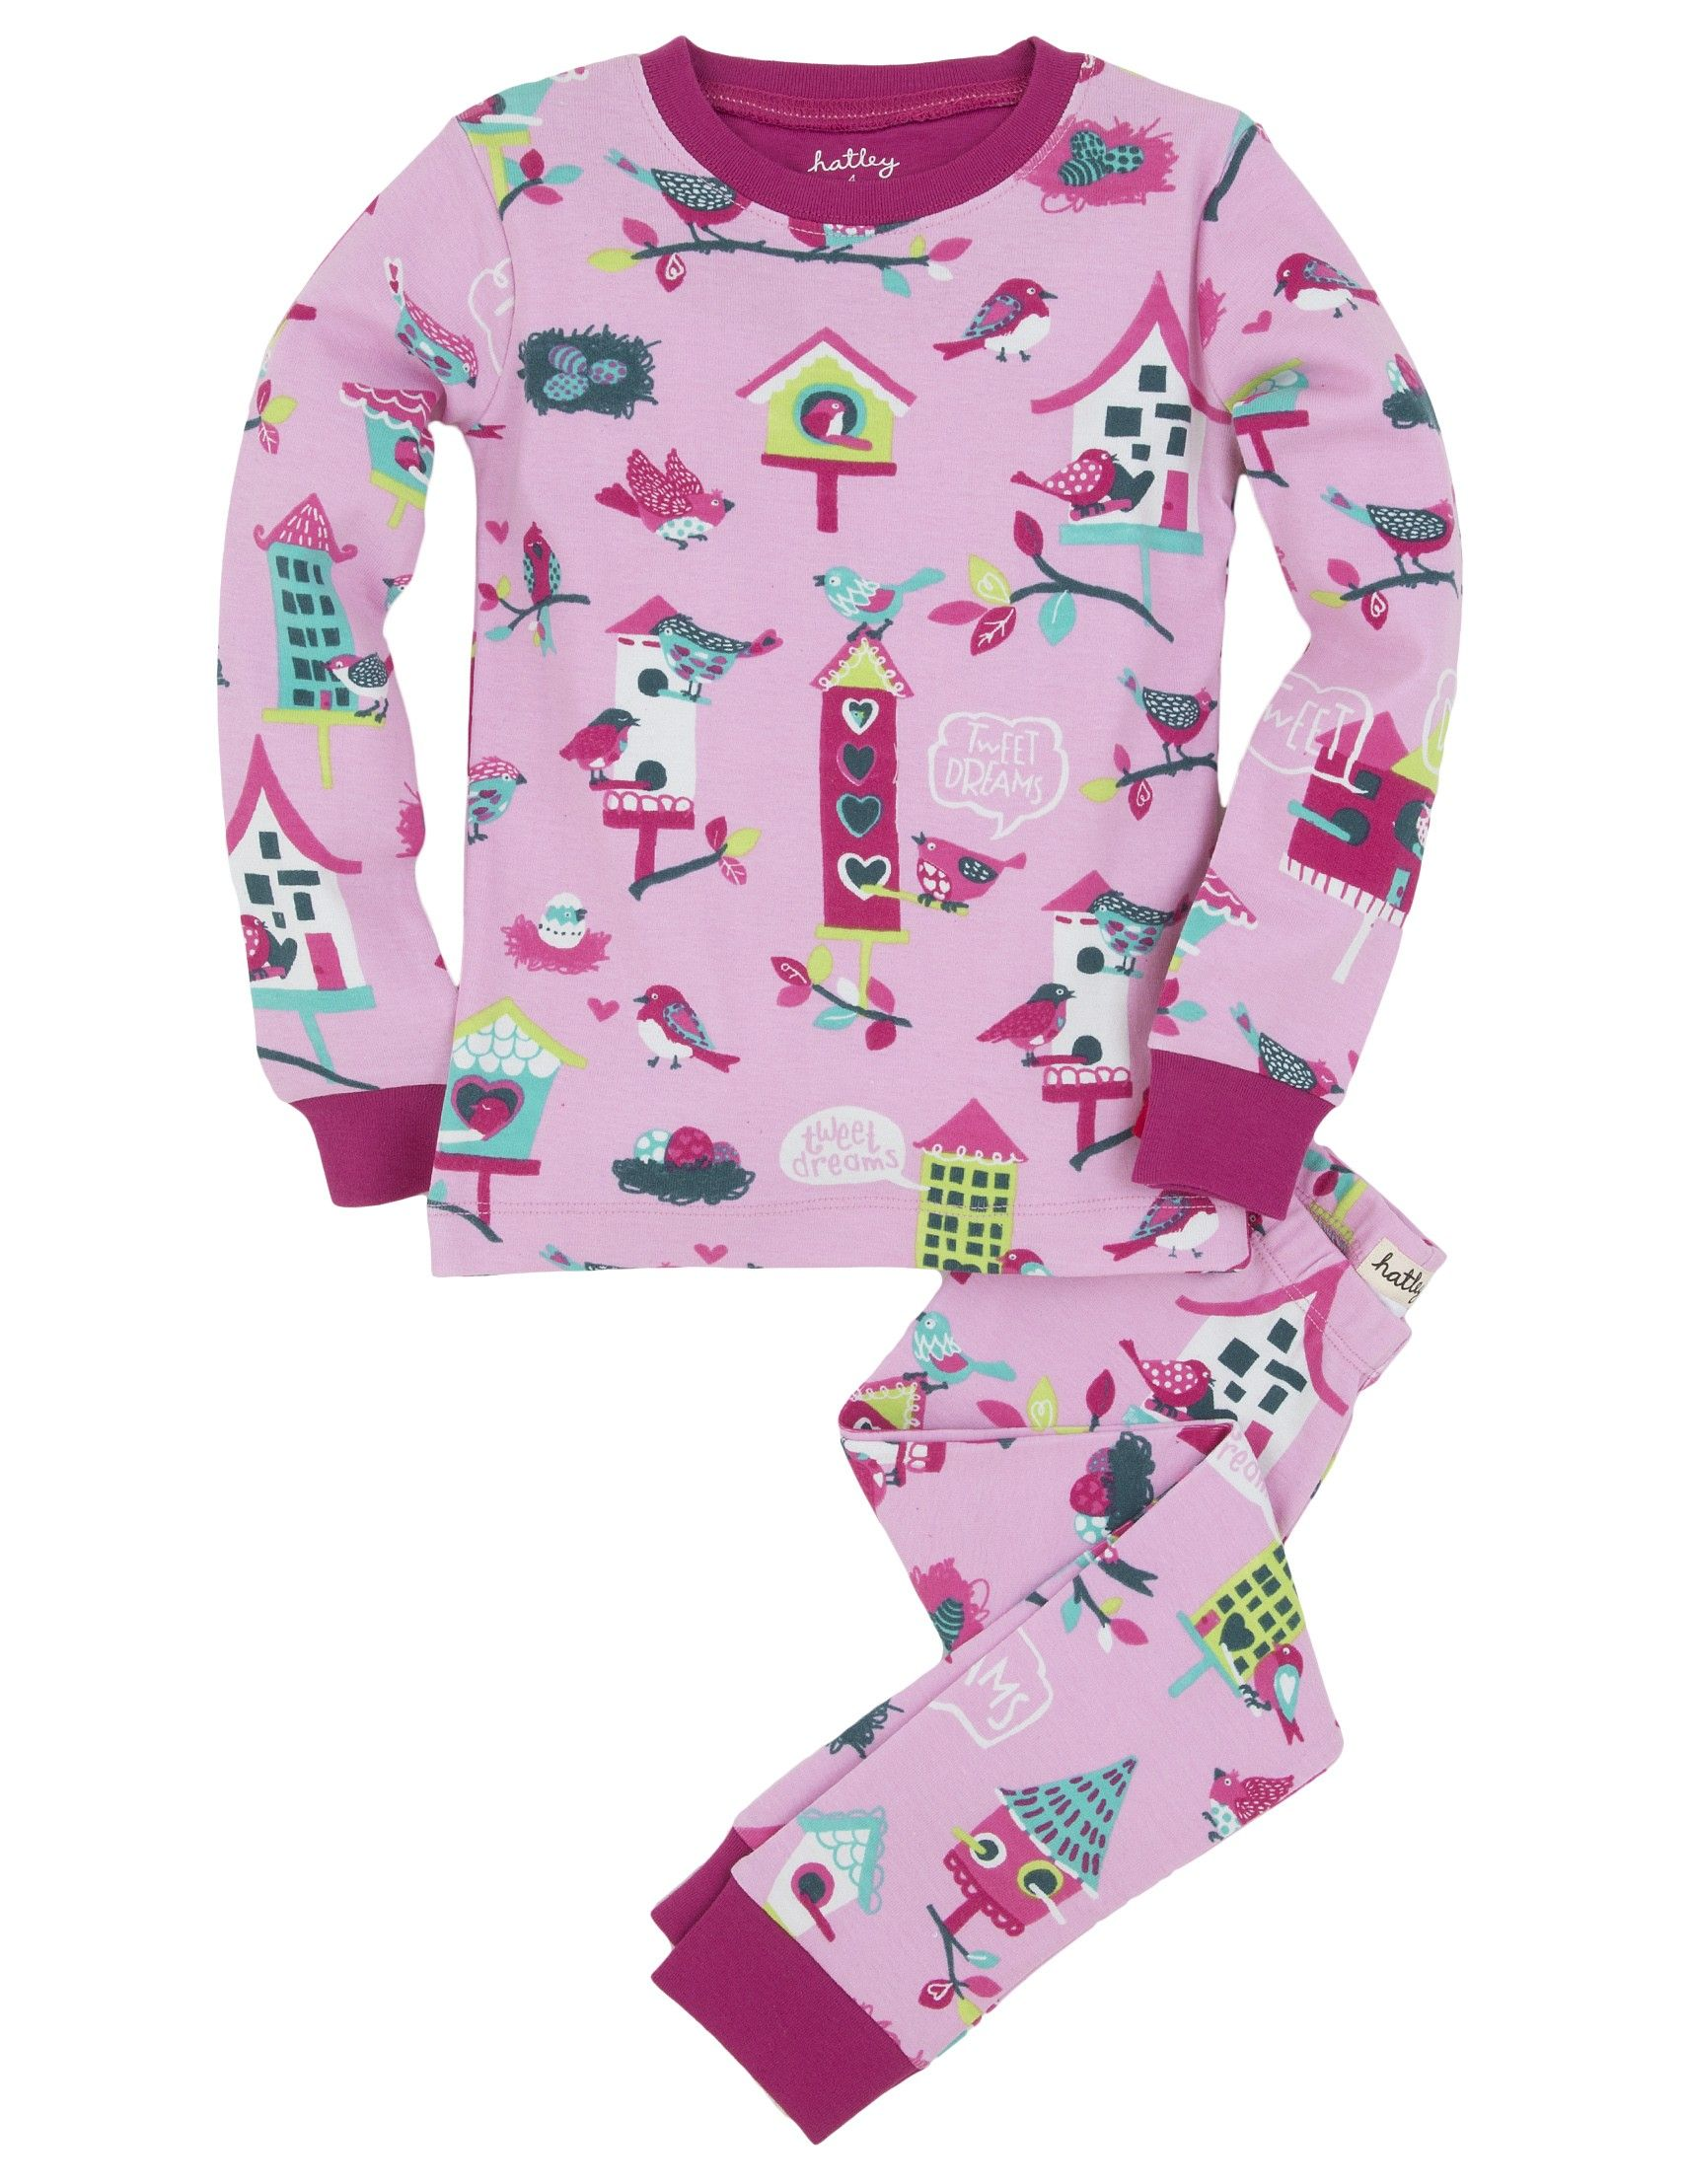 Features:Overall bird houses printSnug fitting with long sleevesContrast cuffsElastic waist on bottomsSuper fun original Hatley printsSizes: 2, 3, 4, 5, 6, 7, 8, 10, 12. Check drop down list for size availability. 100% Cotton.